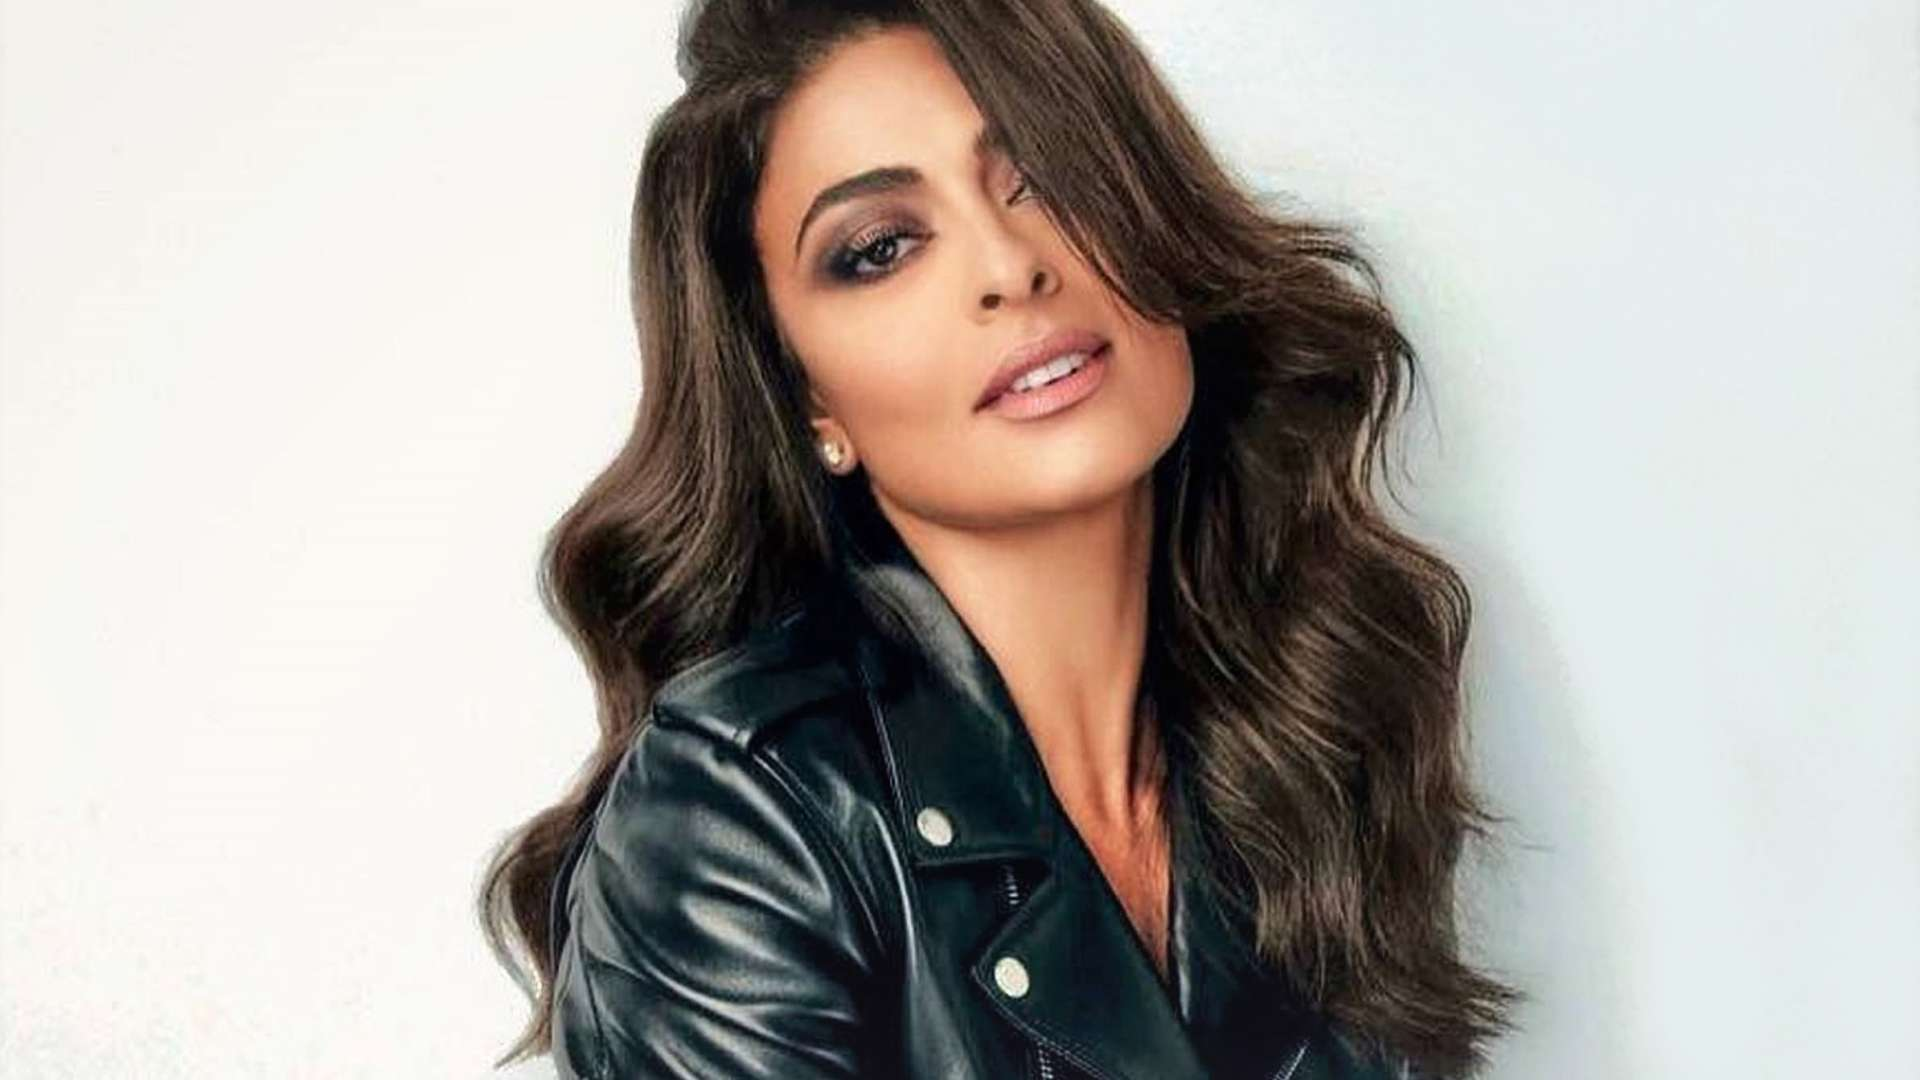 Juliana Paes reveals that she will present a program on television